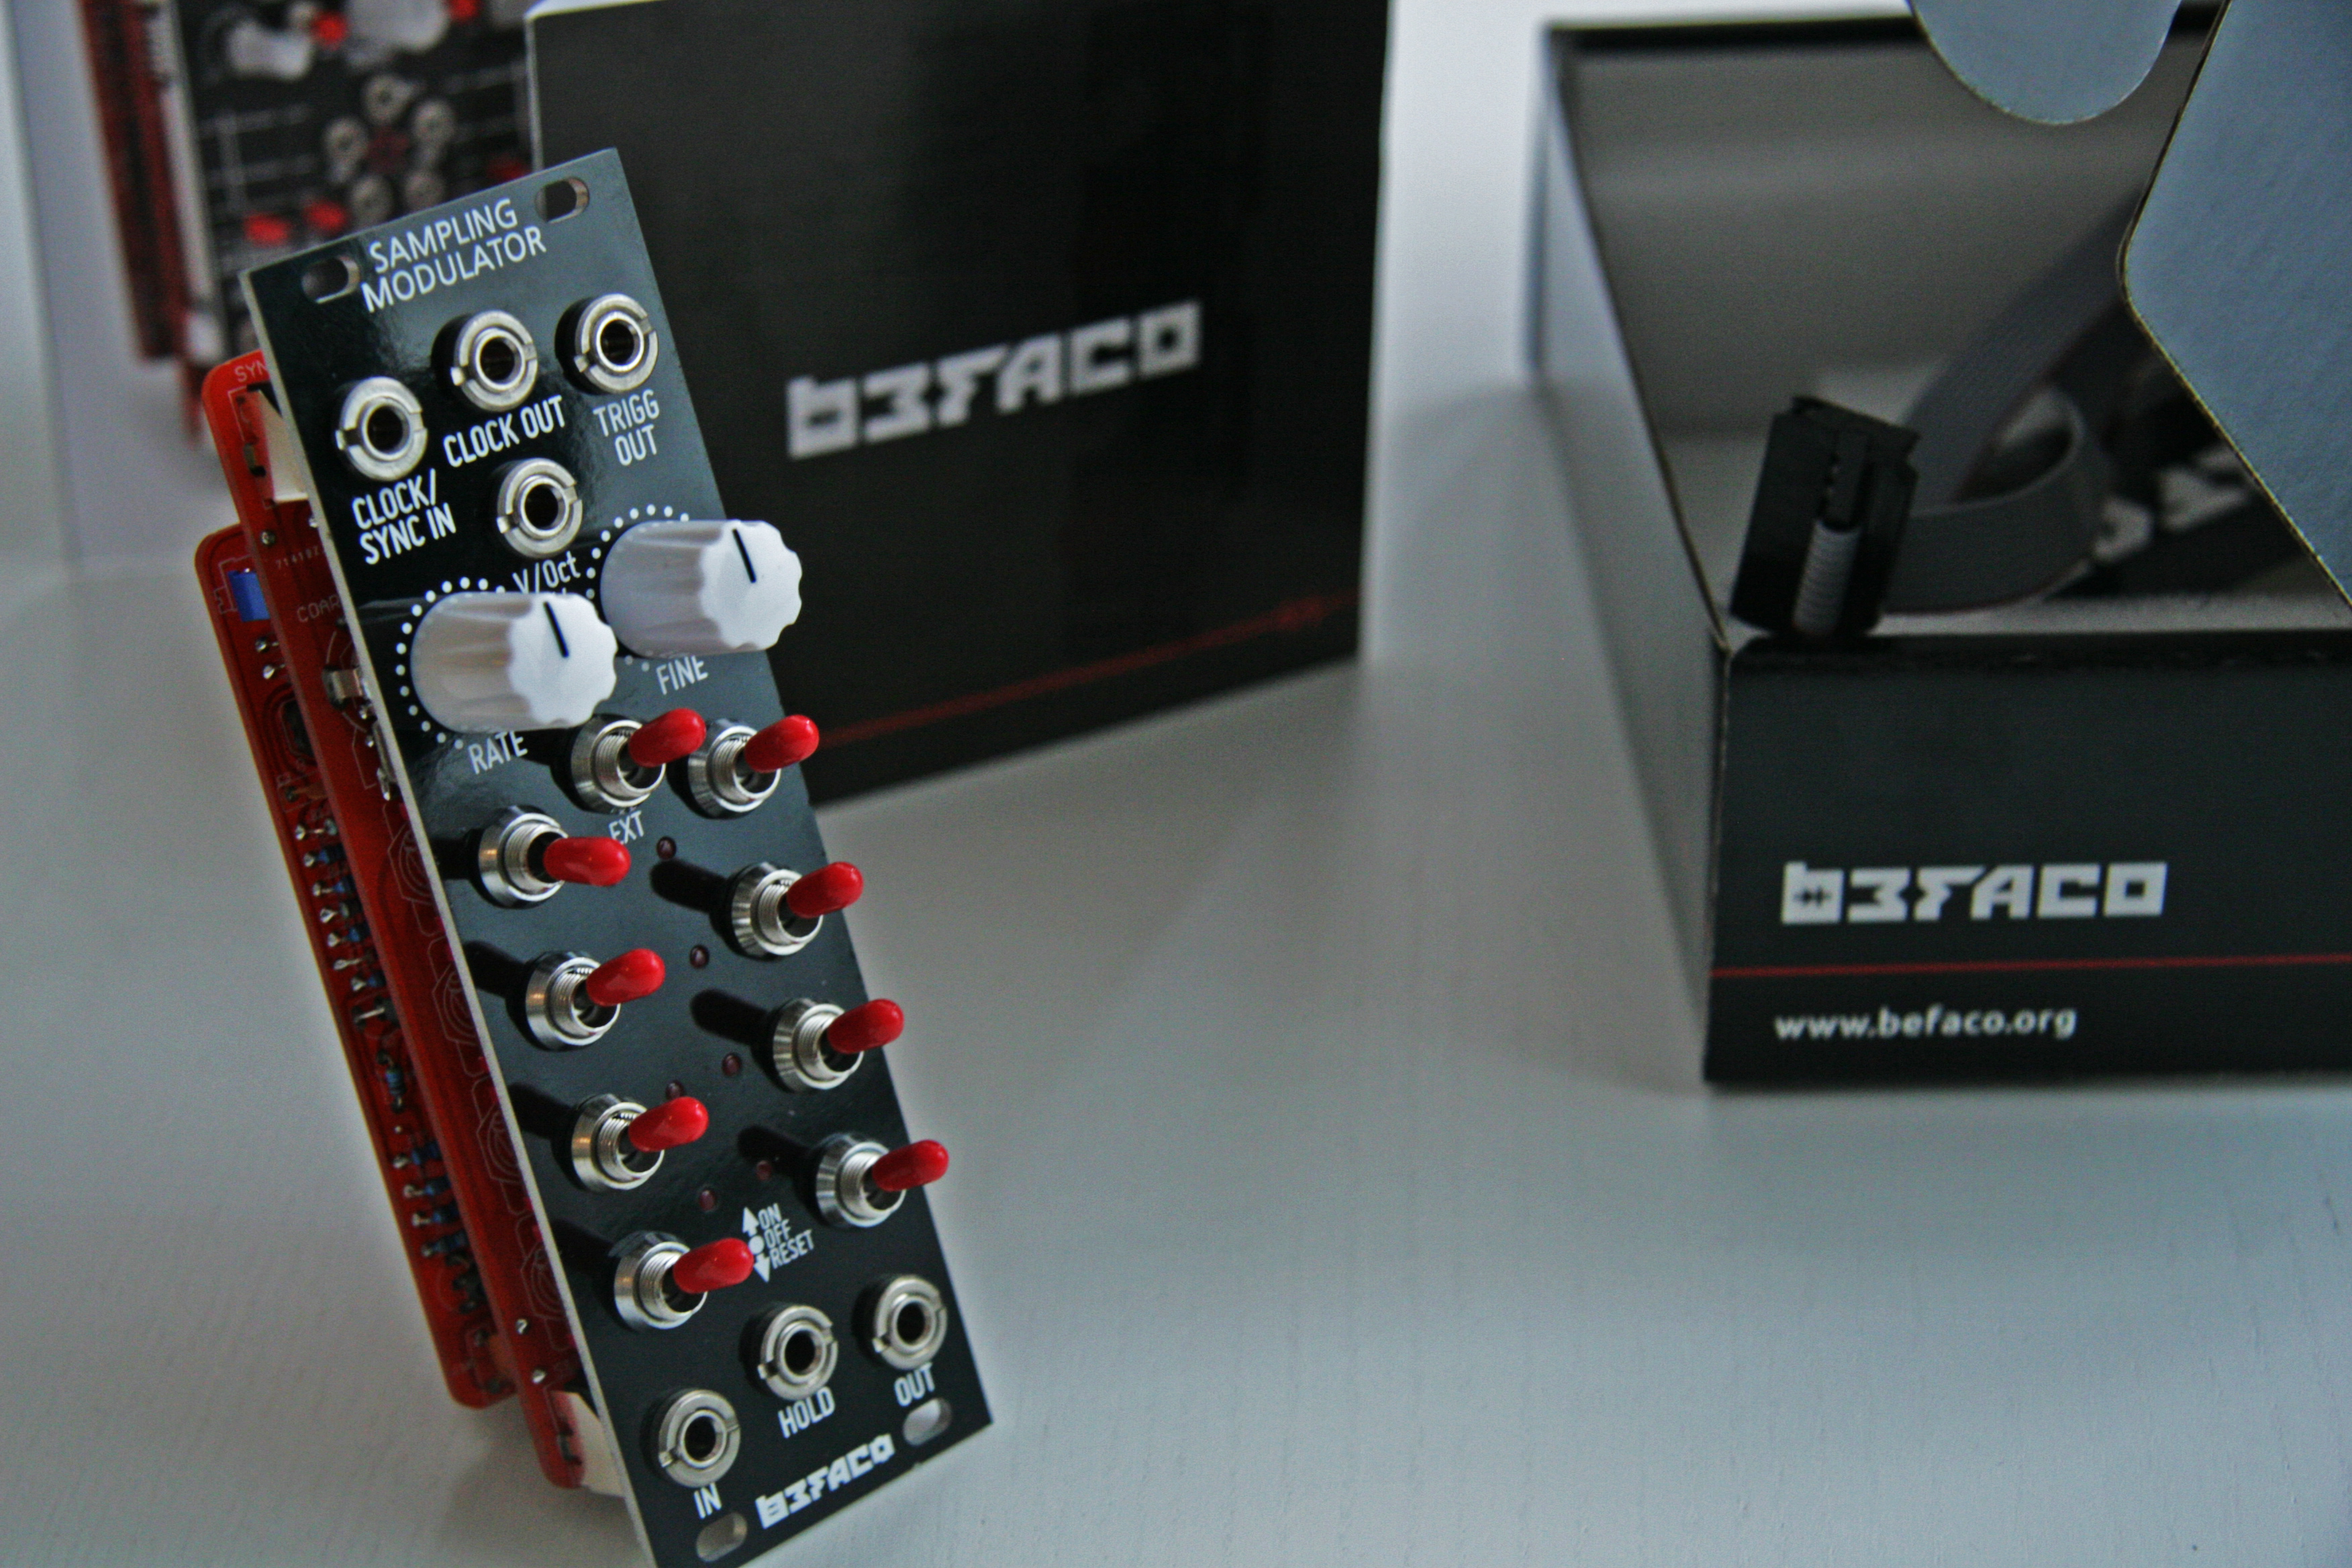 Befaco Sampling Modulator Review